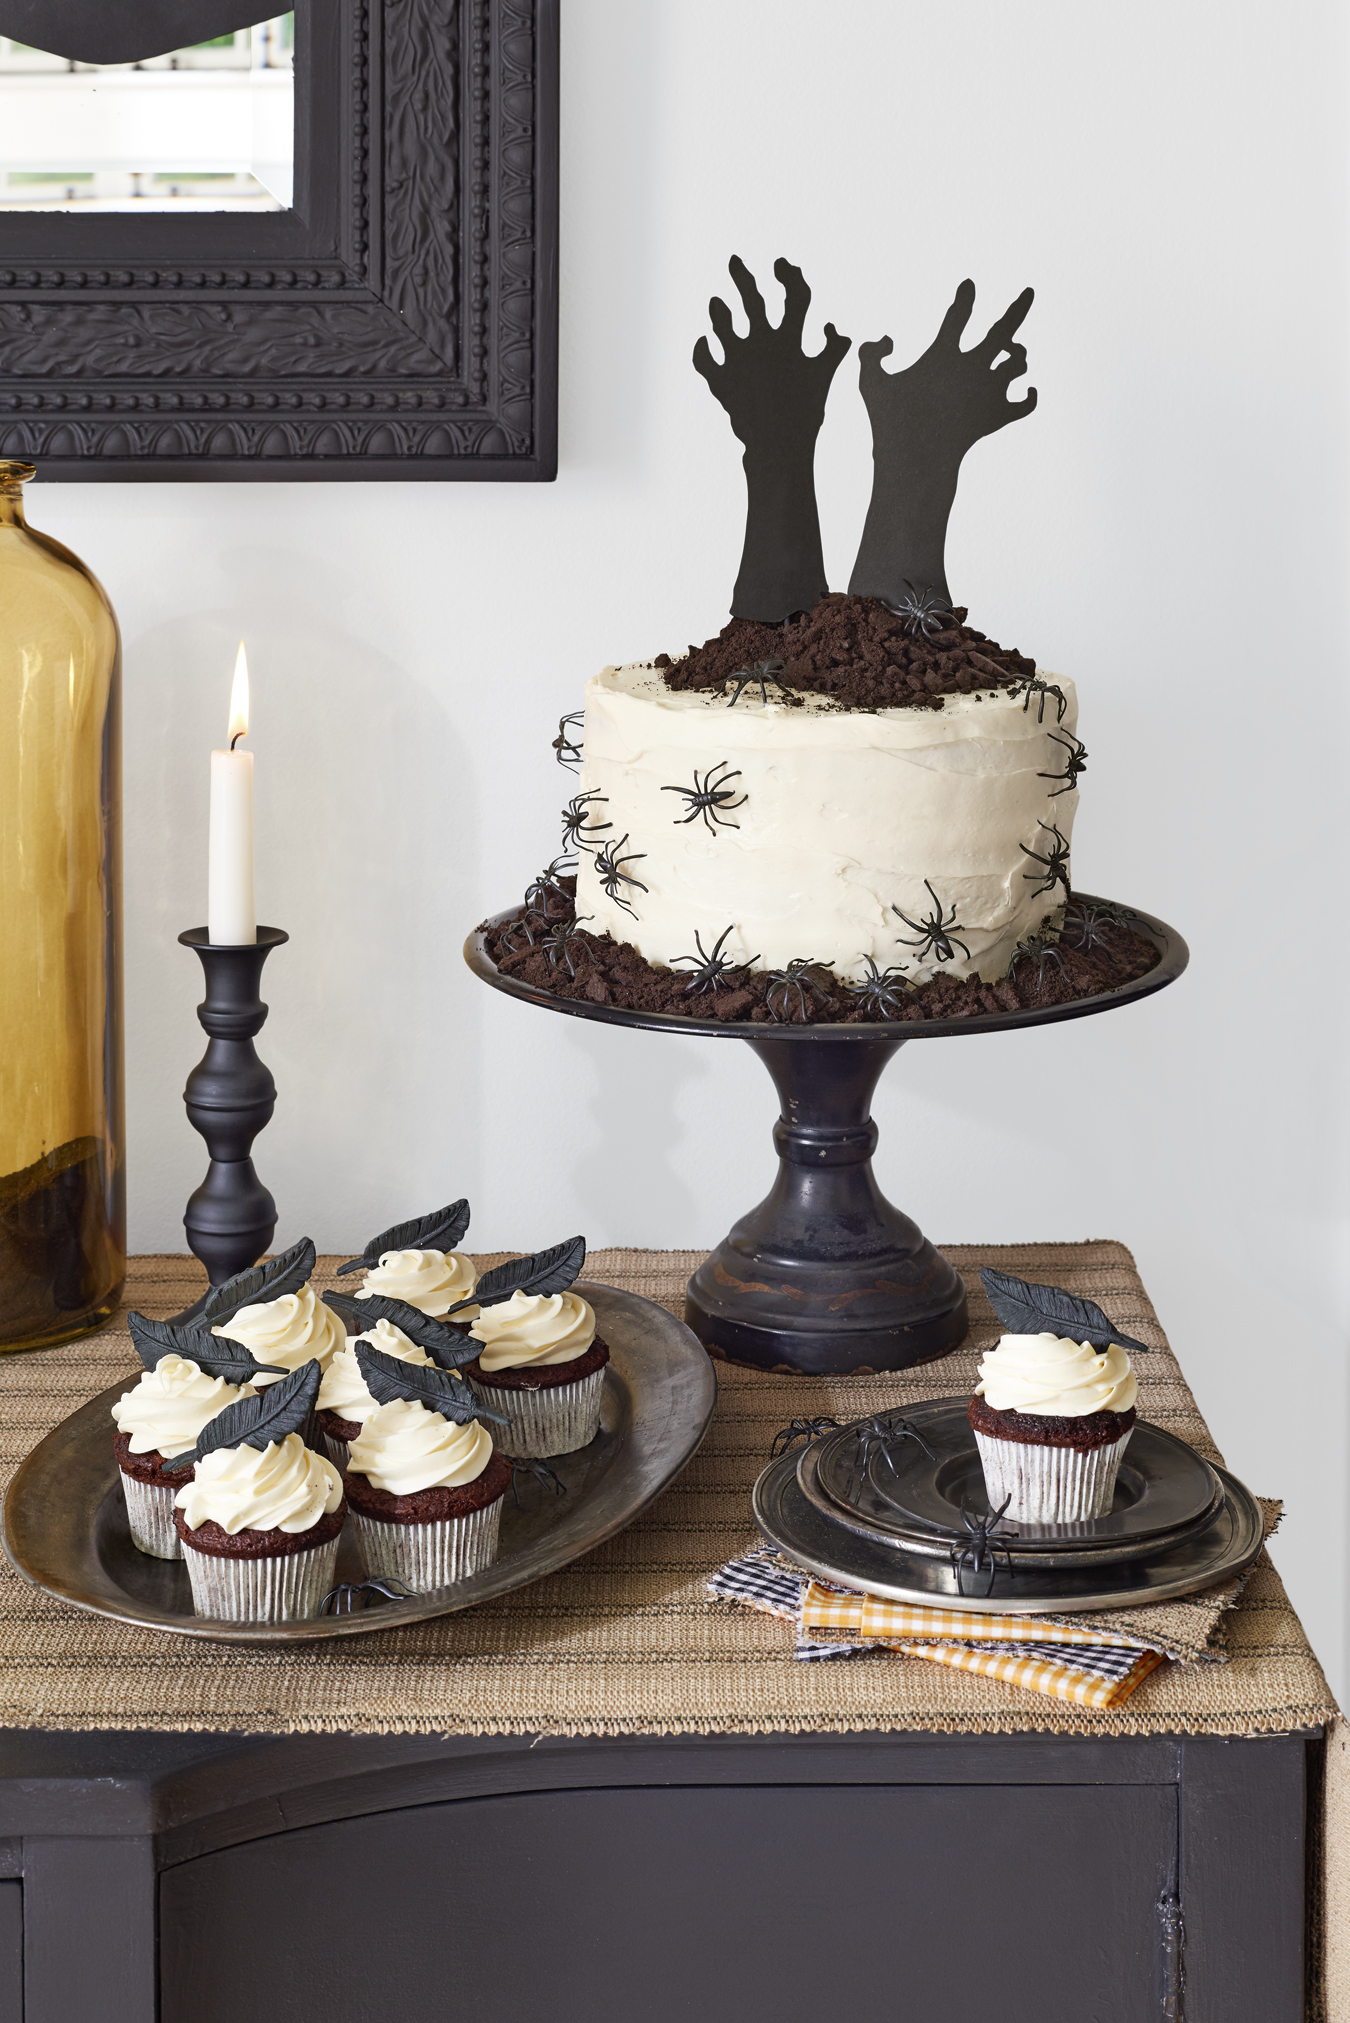 56 fun halloween party decorating ideas spooky halloween party decor - Halloween Decorated Cakes